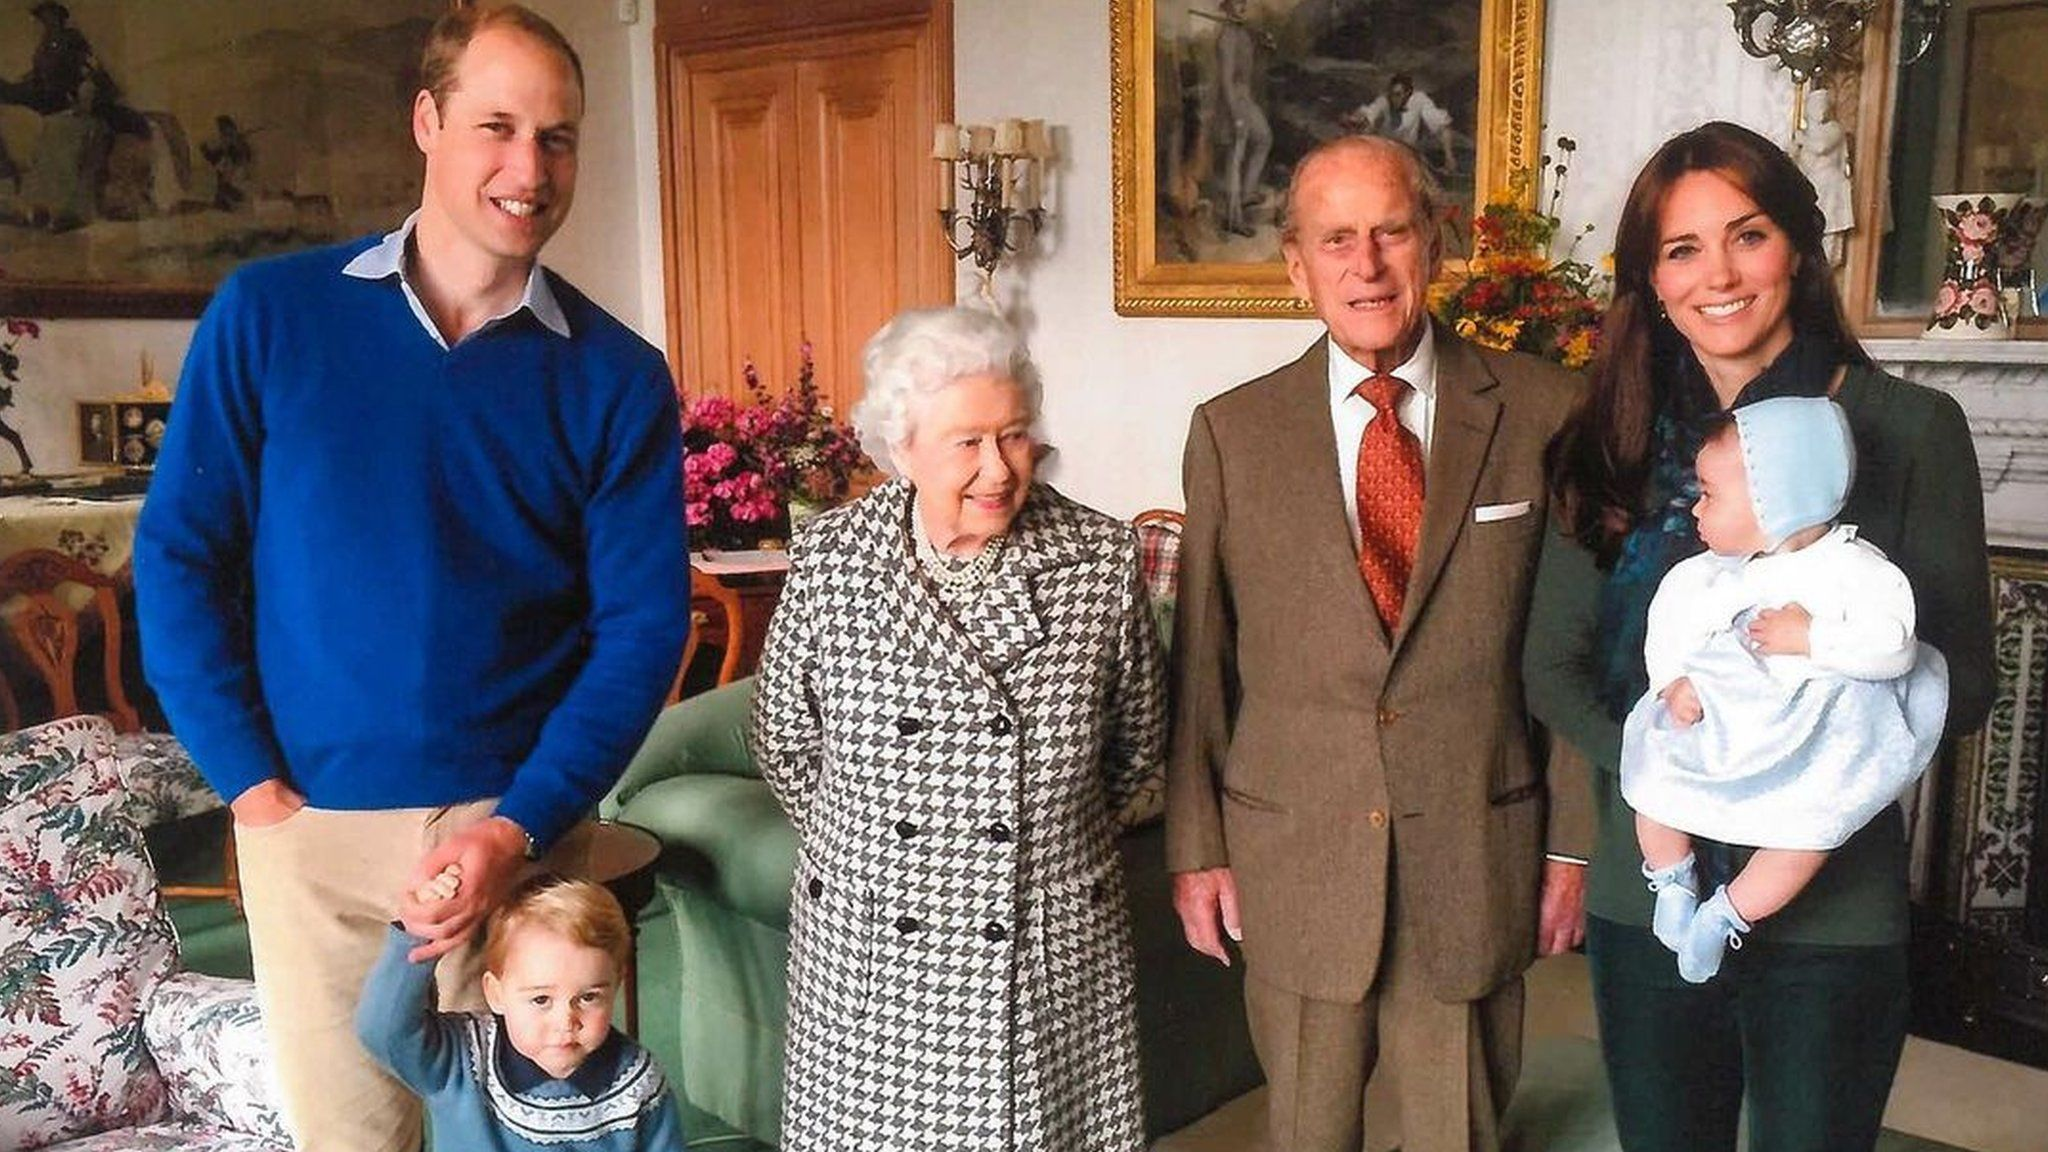 The Queen and Duke of Edinburgh seen with the Duke and Duchess of Cambridge, Prince George and Princess Charlotte at Windsor in 2015